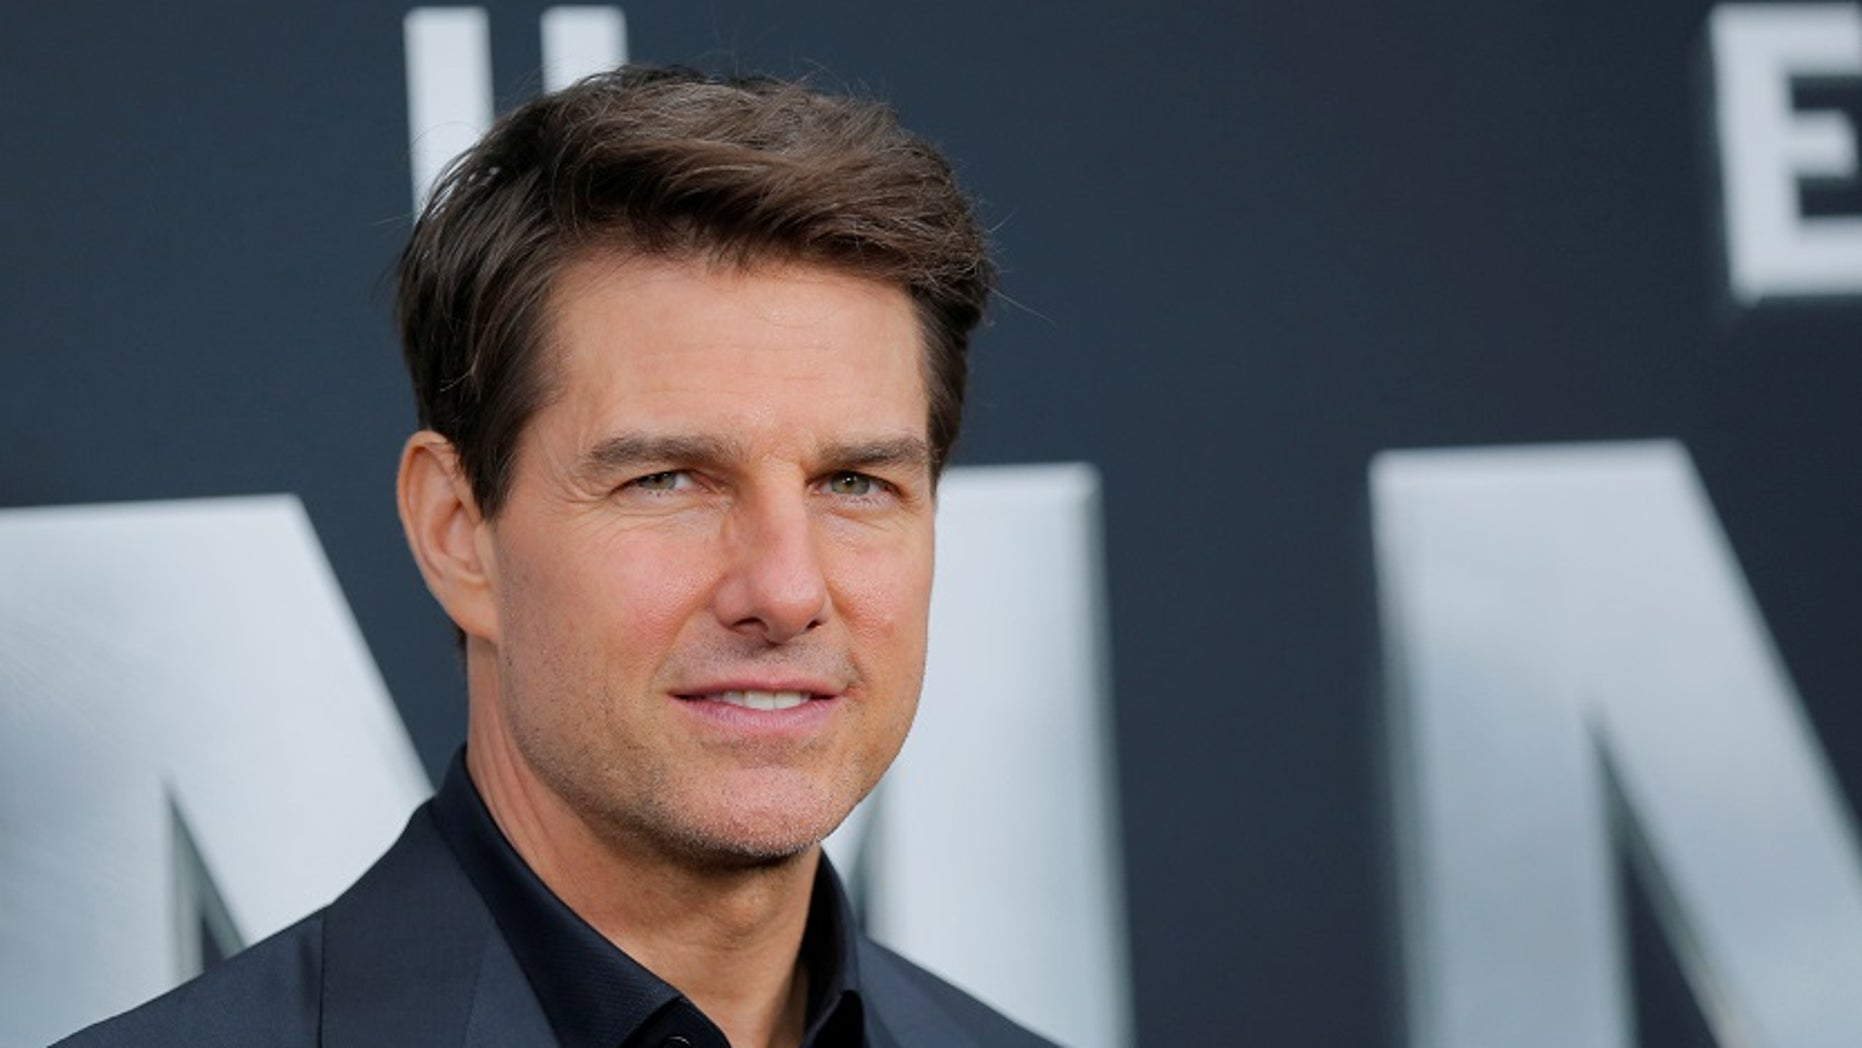 """Tom Cruise at the premiere of the film """"The Mummy"""" in New York, June 6, 2017."""